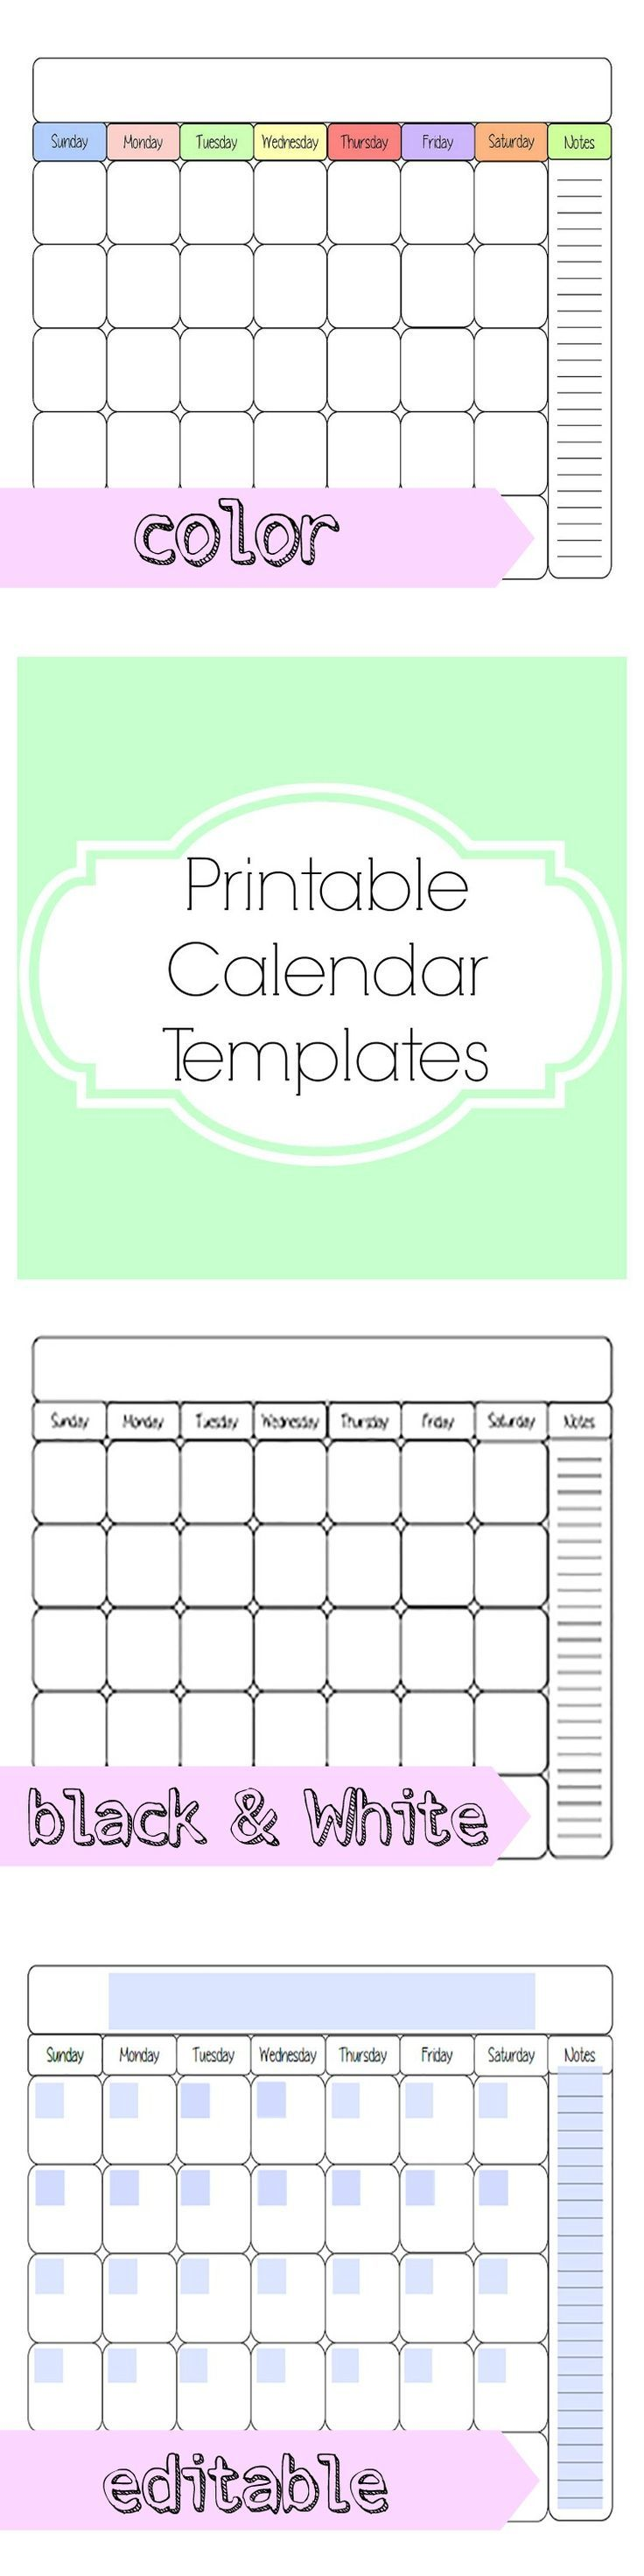 Free Printable Calendar Template  Planners Organizations And